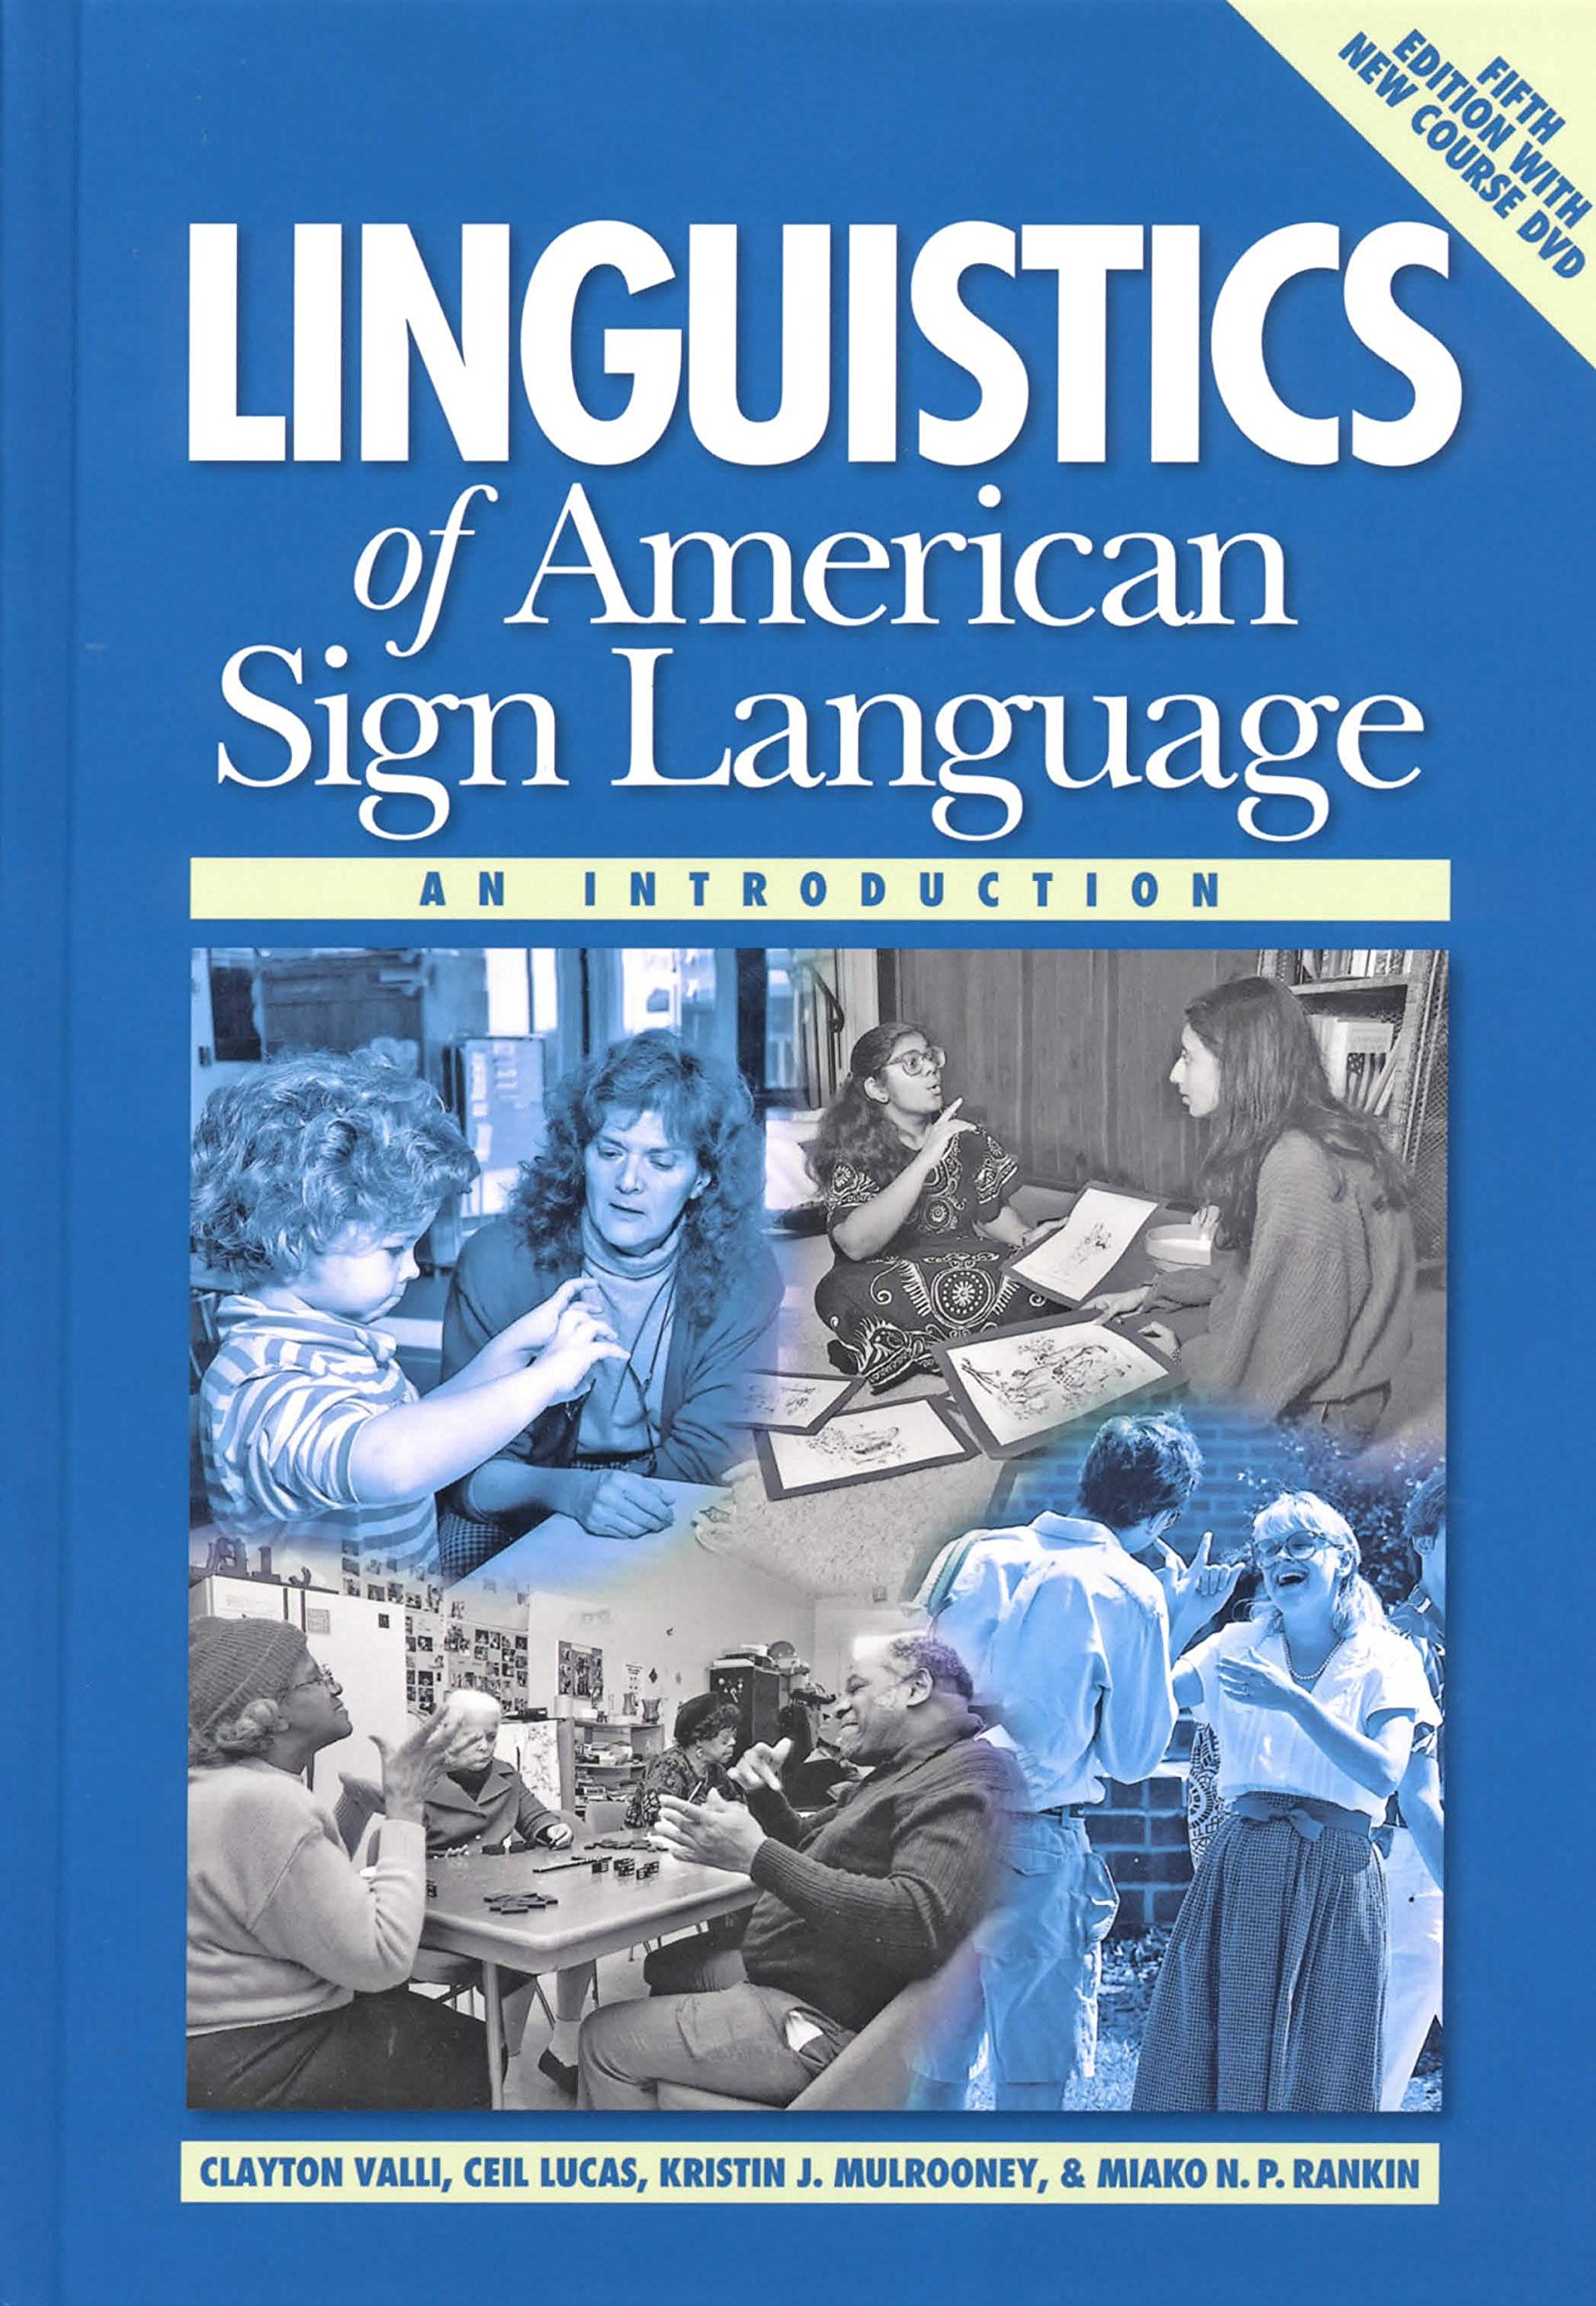 Linguistics of American Sign Language, 5th Ed.: An Introduction by Harris Communications (Image #1)